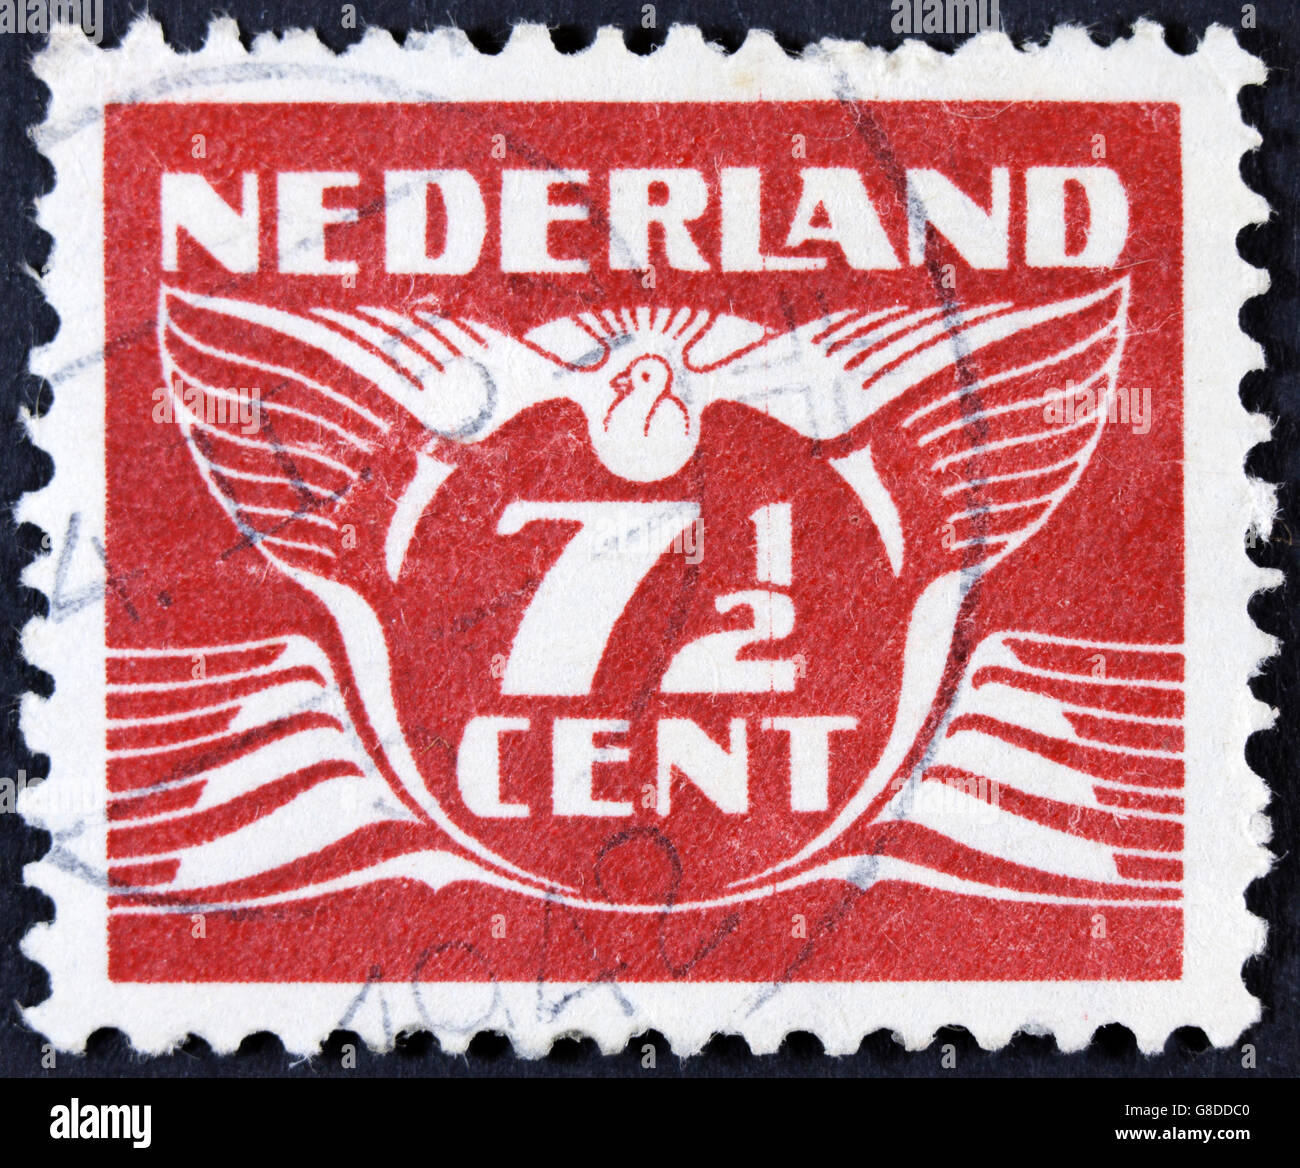 NETHERLANDS - CIRCA 1941 : A 7 1 2 cent stamp printed in the Netherlands, circa 1941 - Stock Image